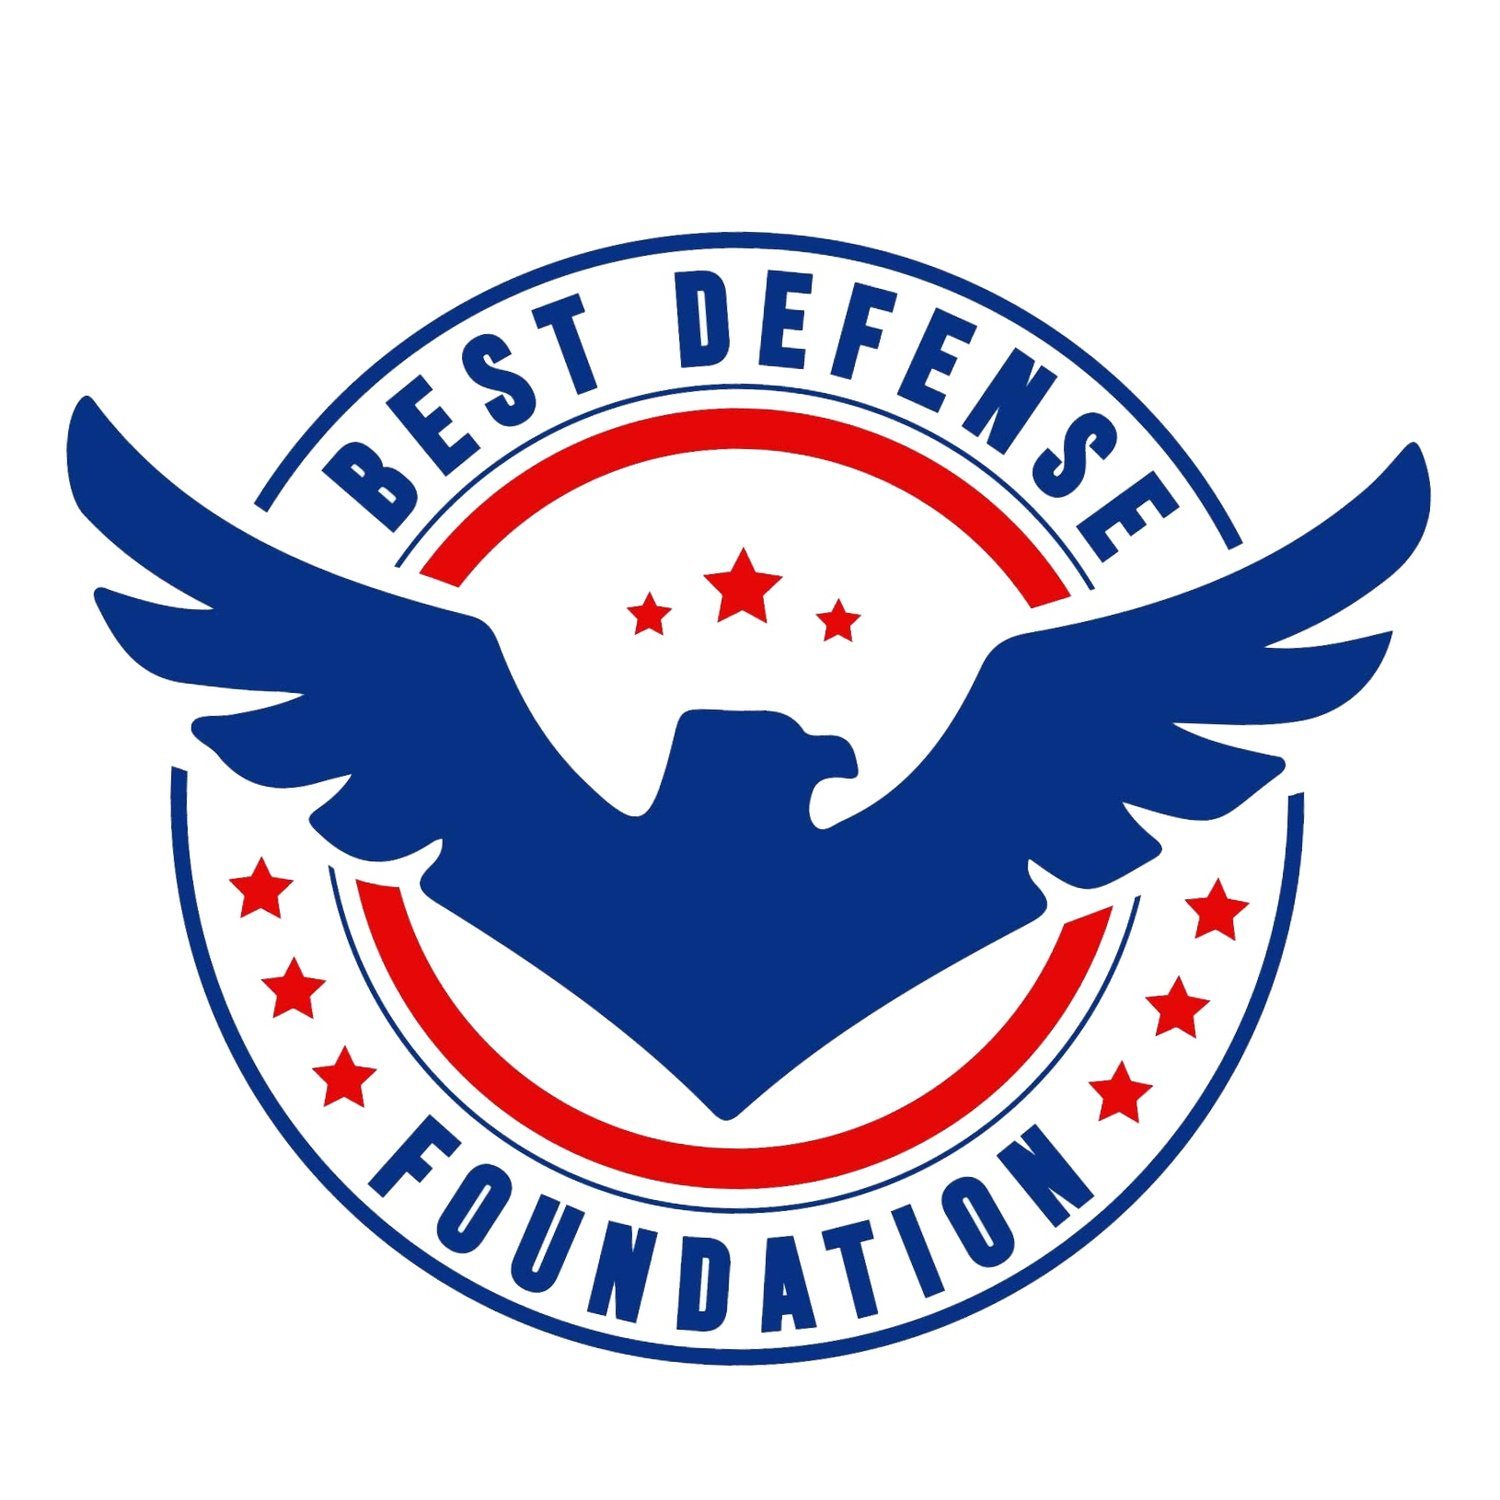 Best Defense Foundation